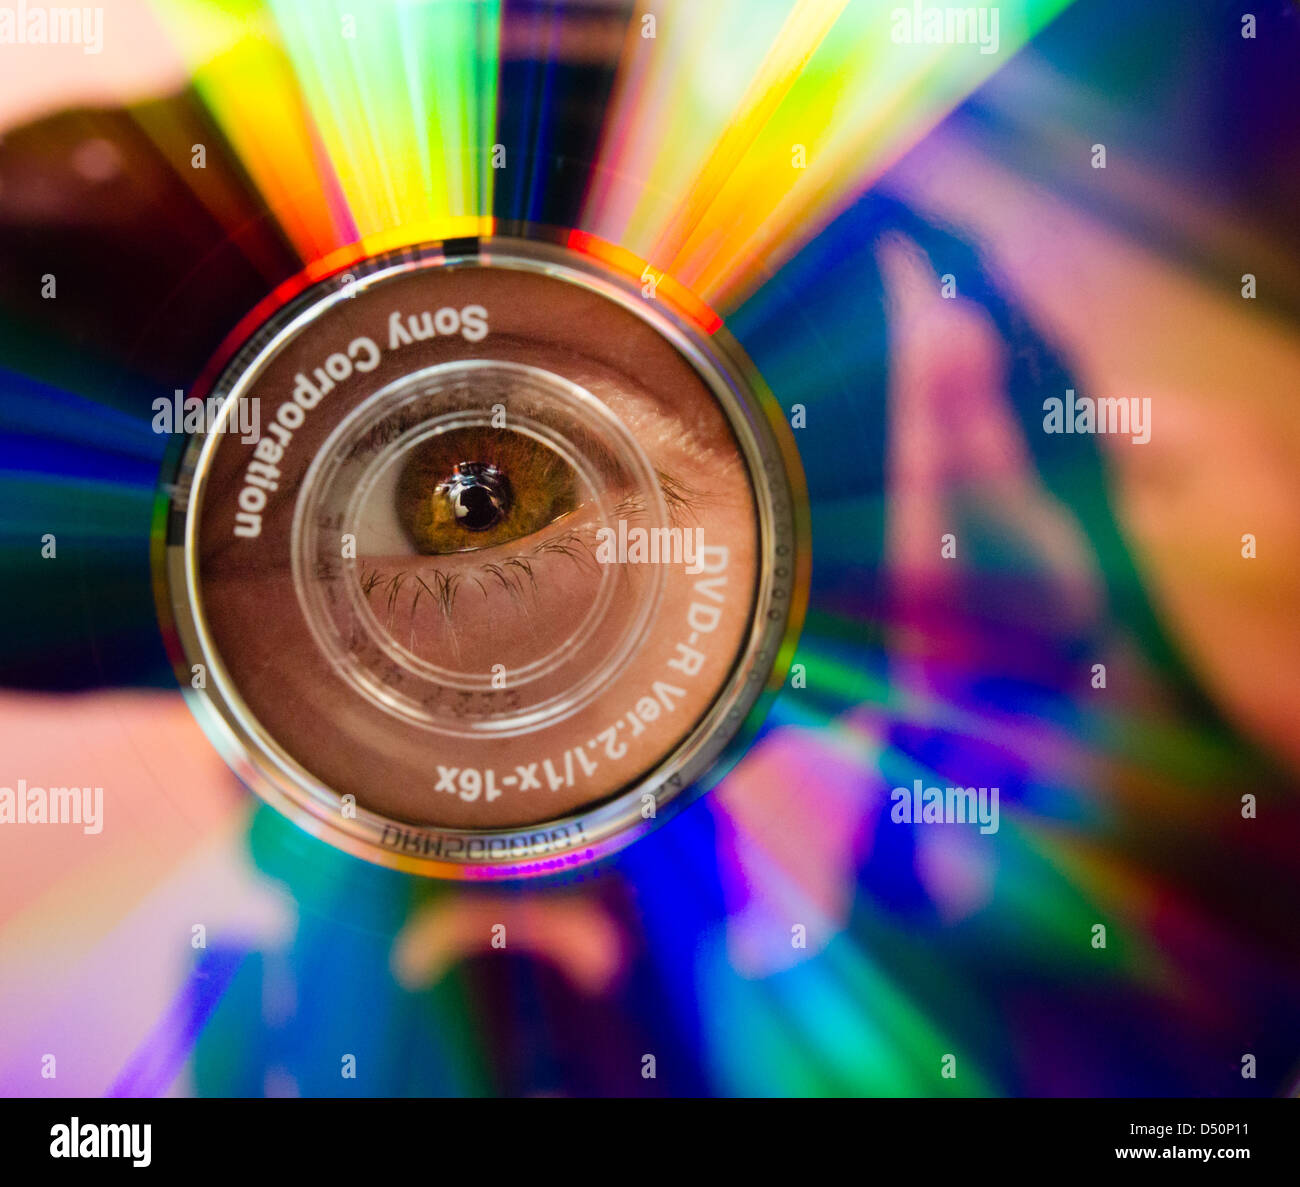 Close up of an eye seen through the hole of a Sony DVD-R - Stock Image